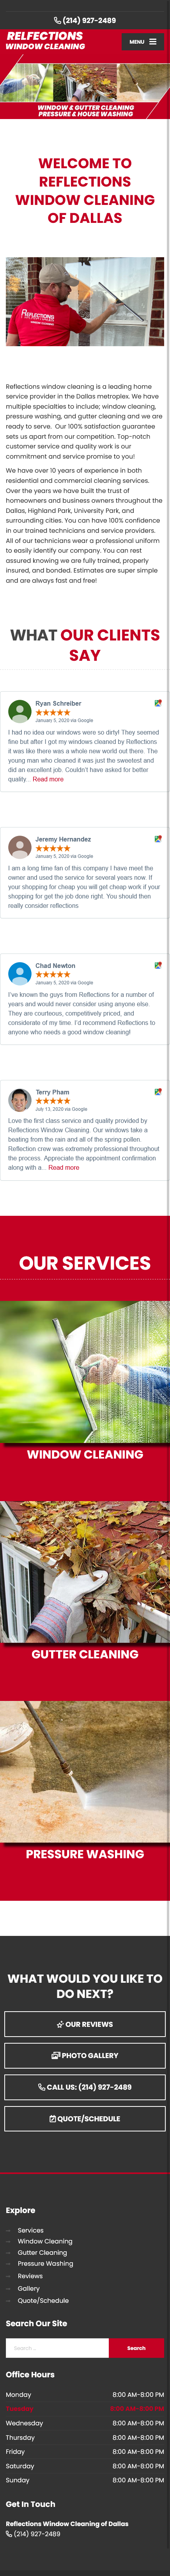 window cleaning company mobile website design